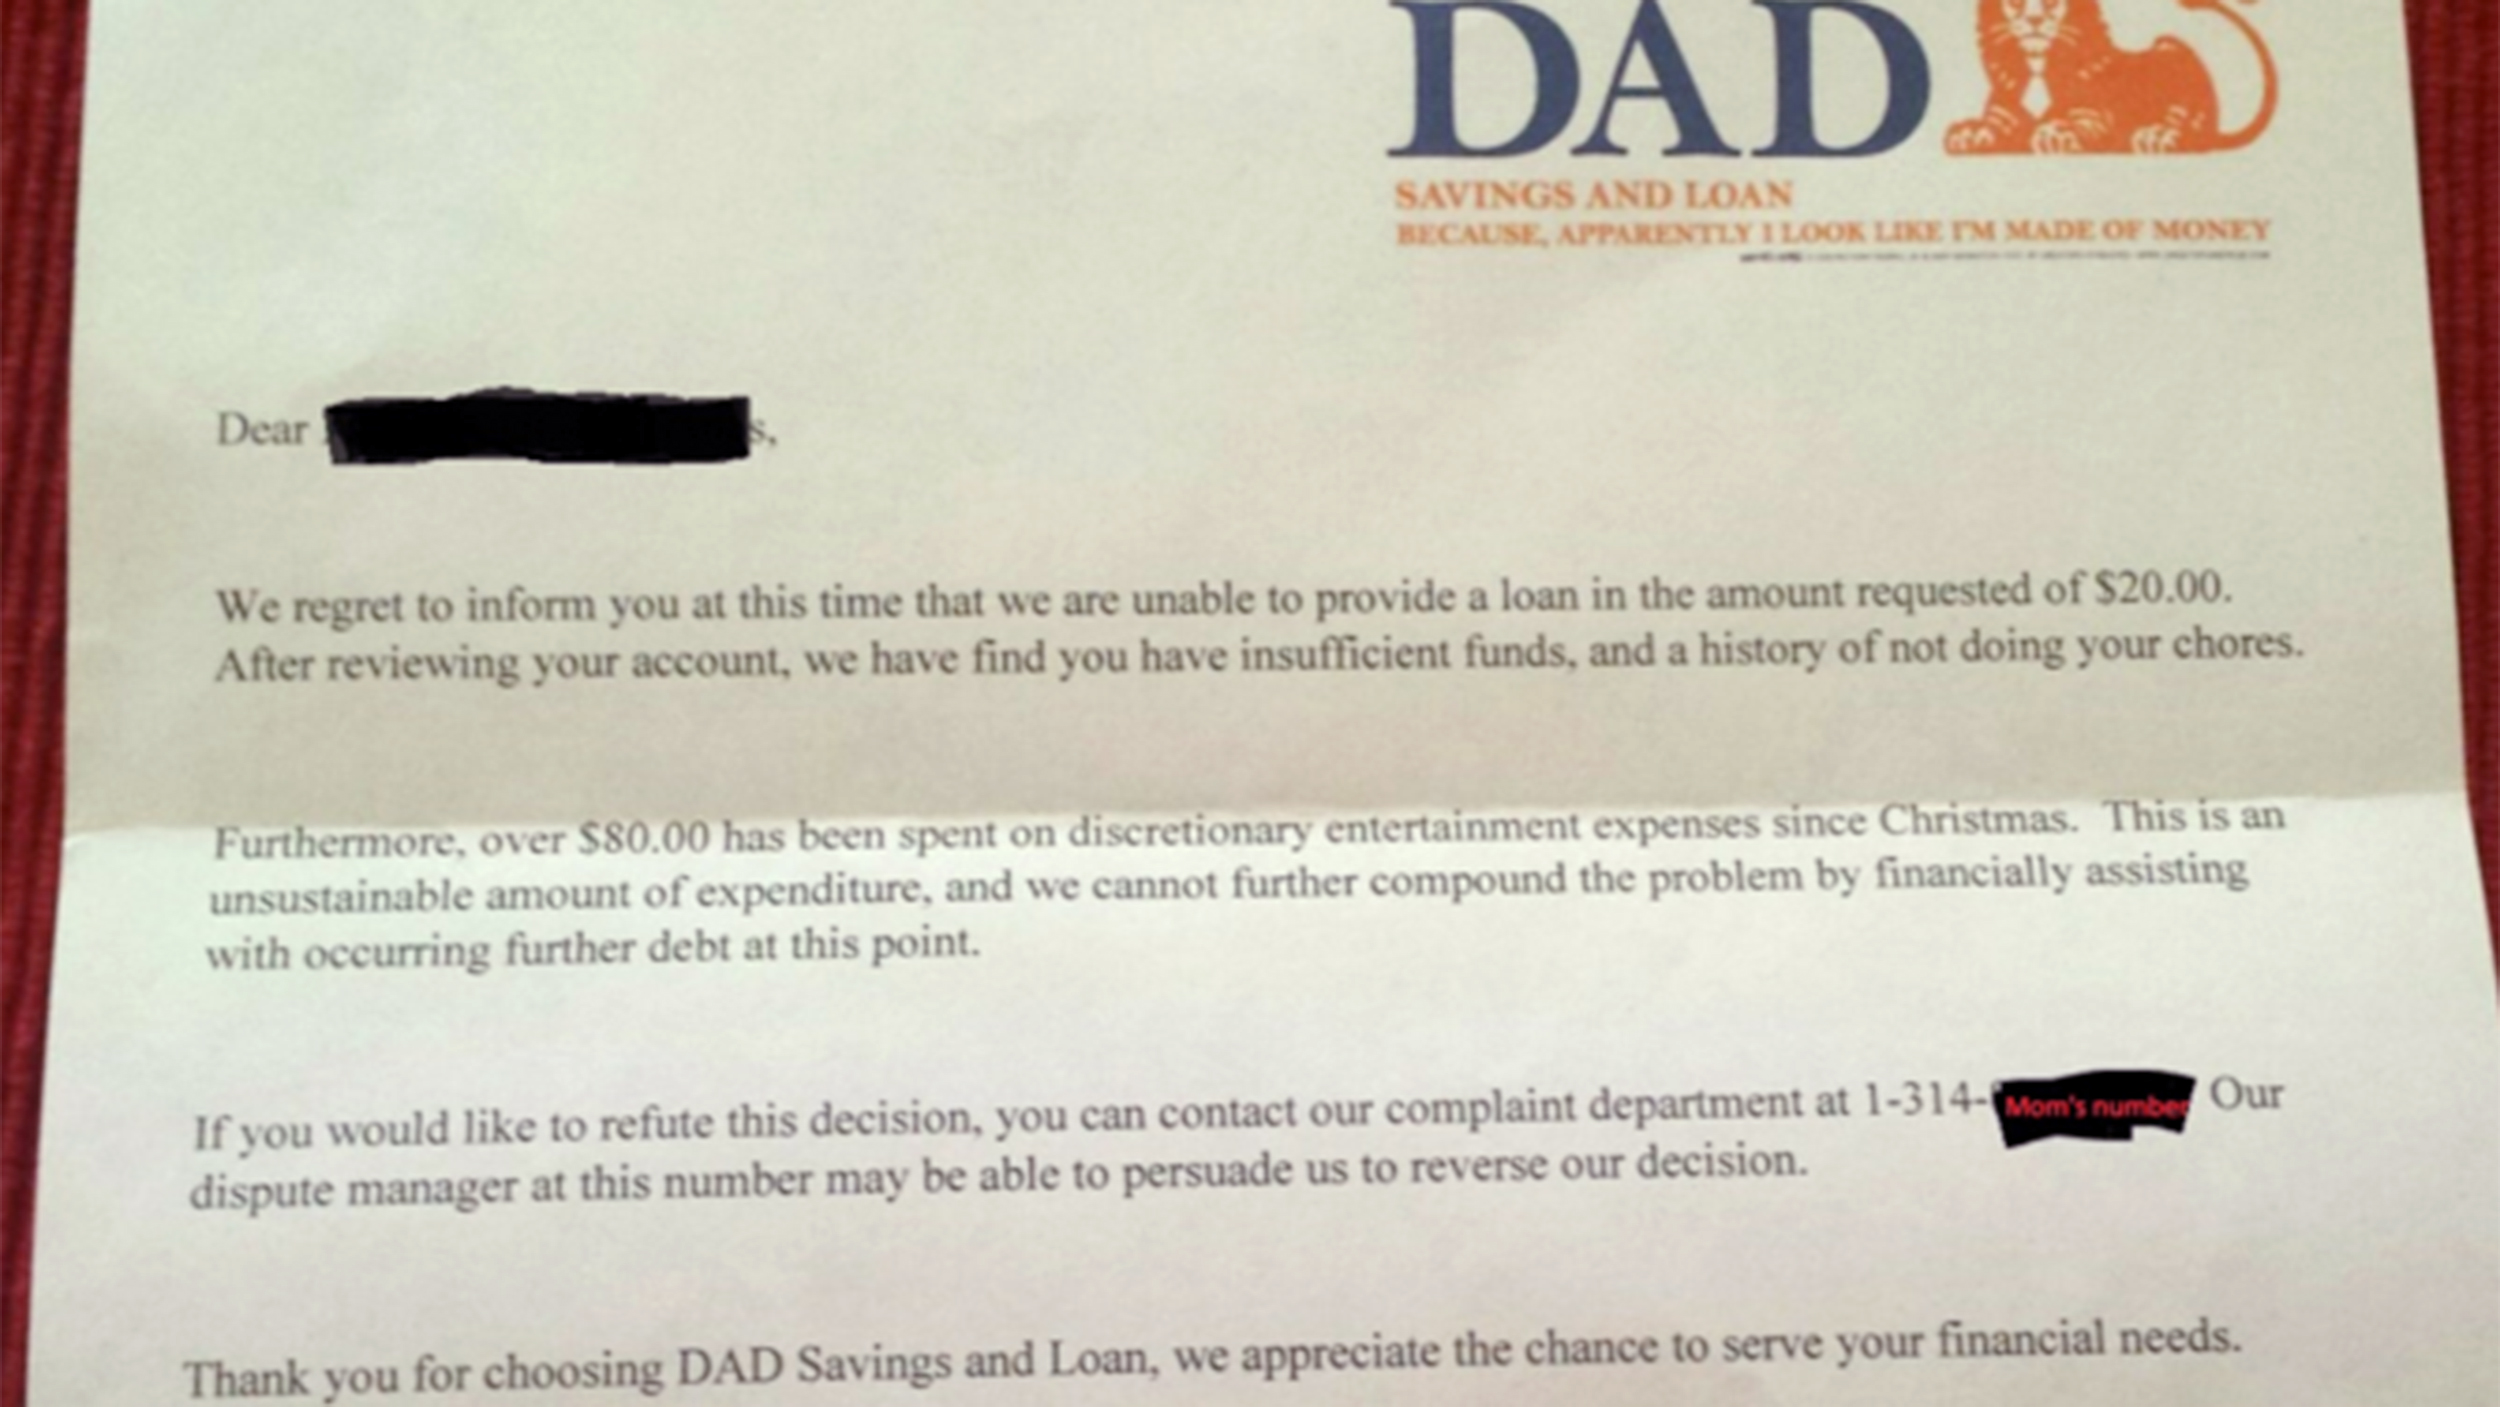 You have insufficient funds': See this dad's great response to his ...